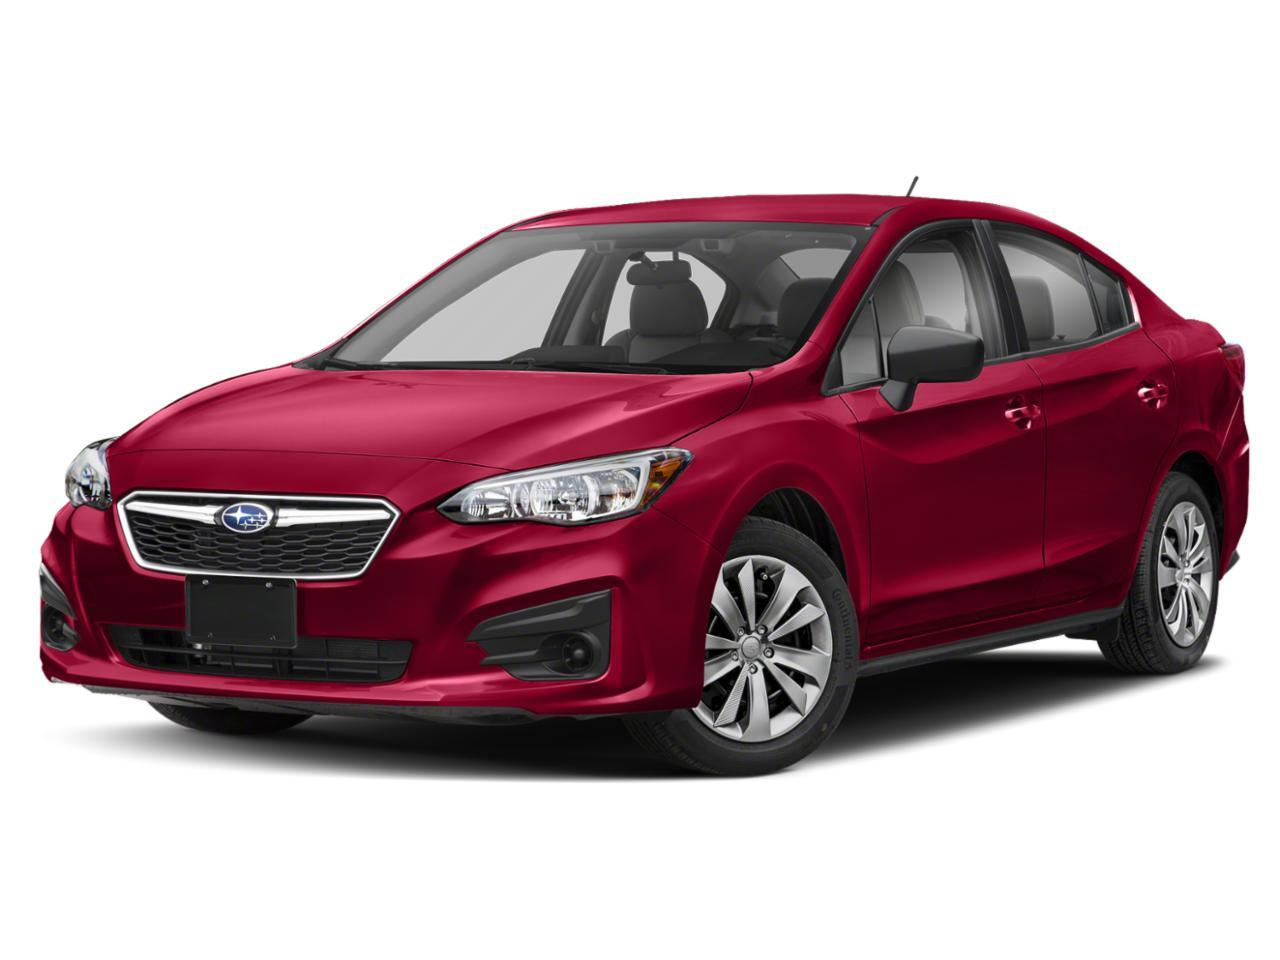 2019 Subaru Impreza Vehicle Photo in Oshkosh, WI 54904